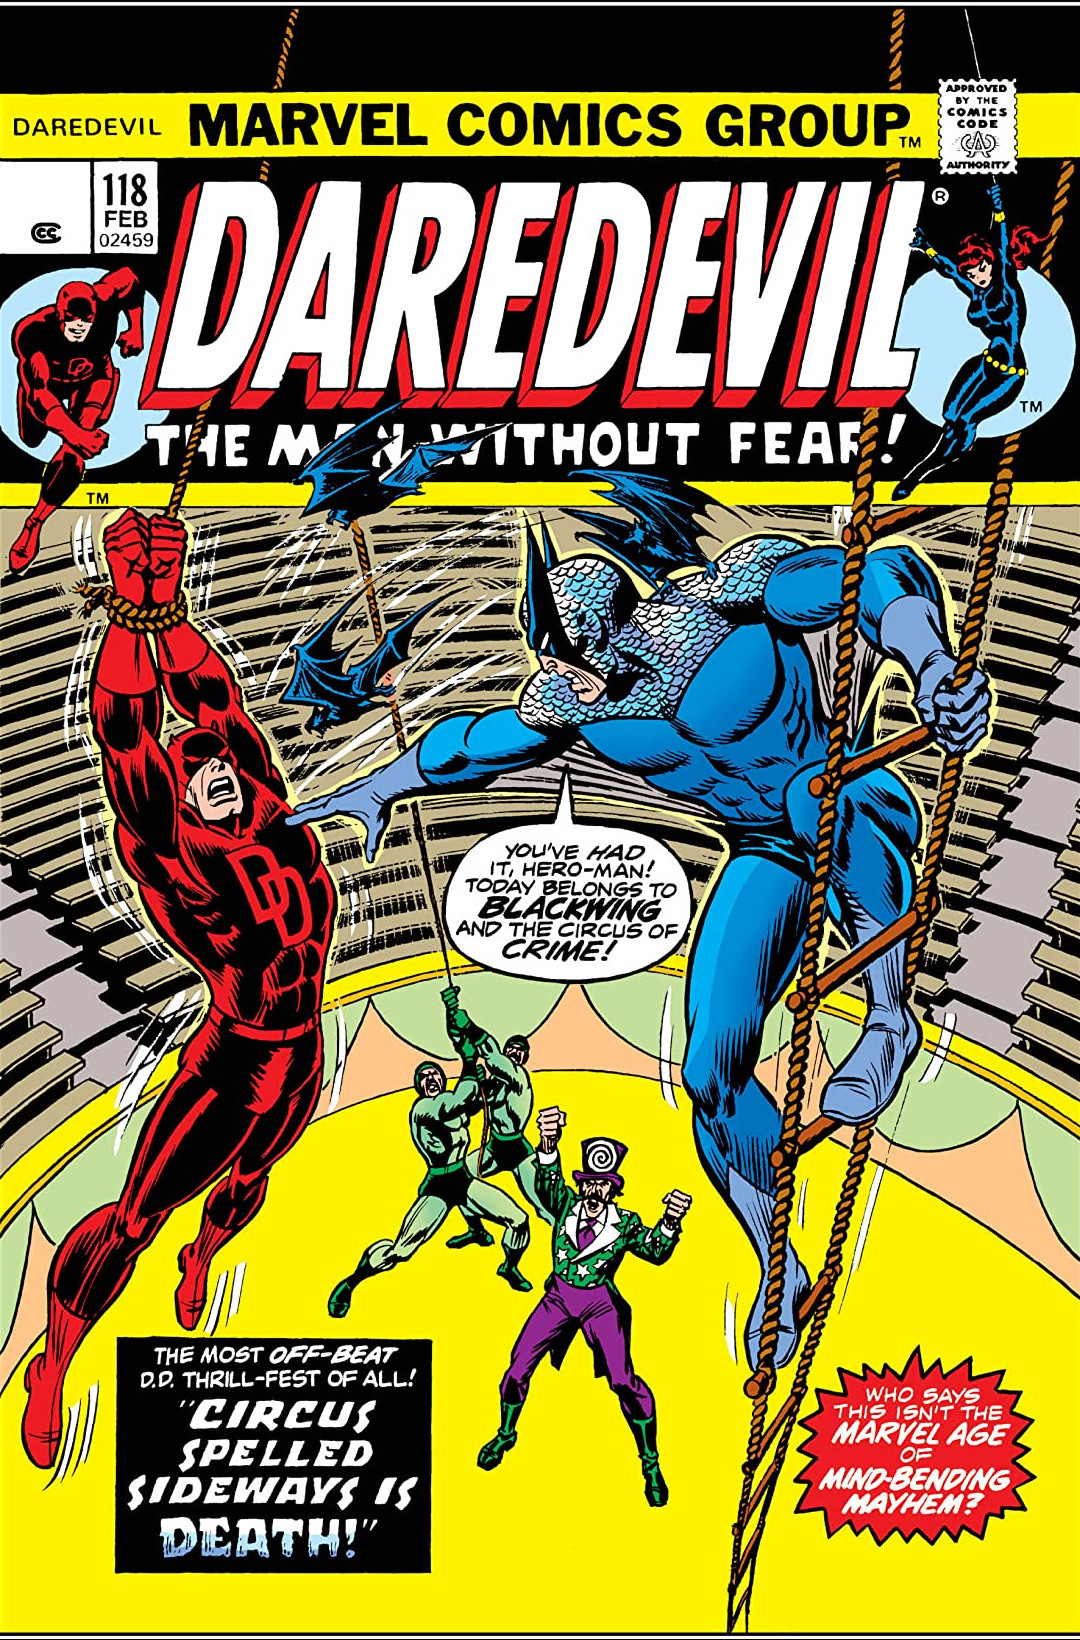 Daredevil Vol 1 118